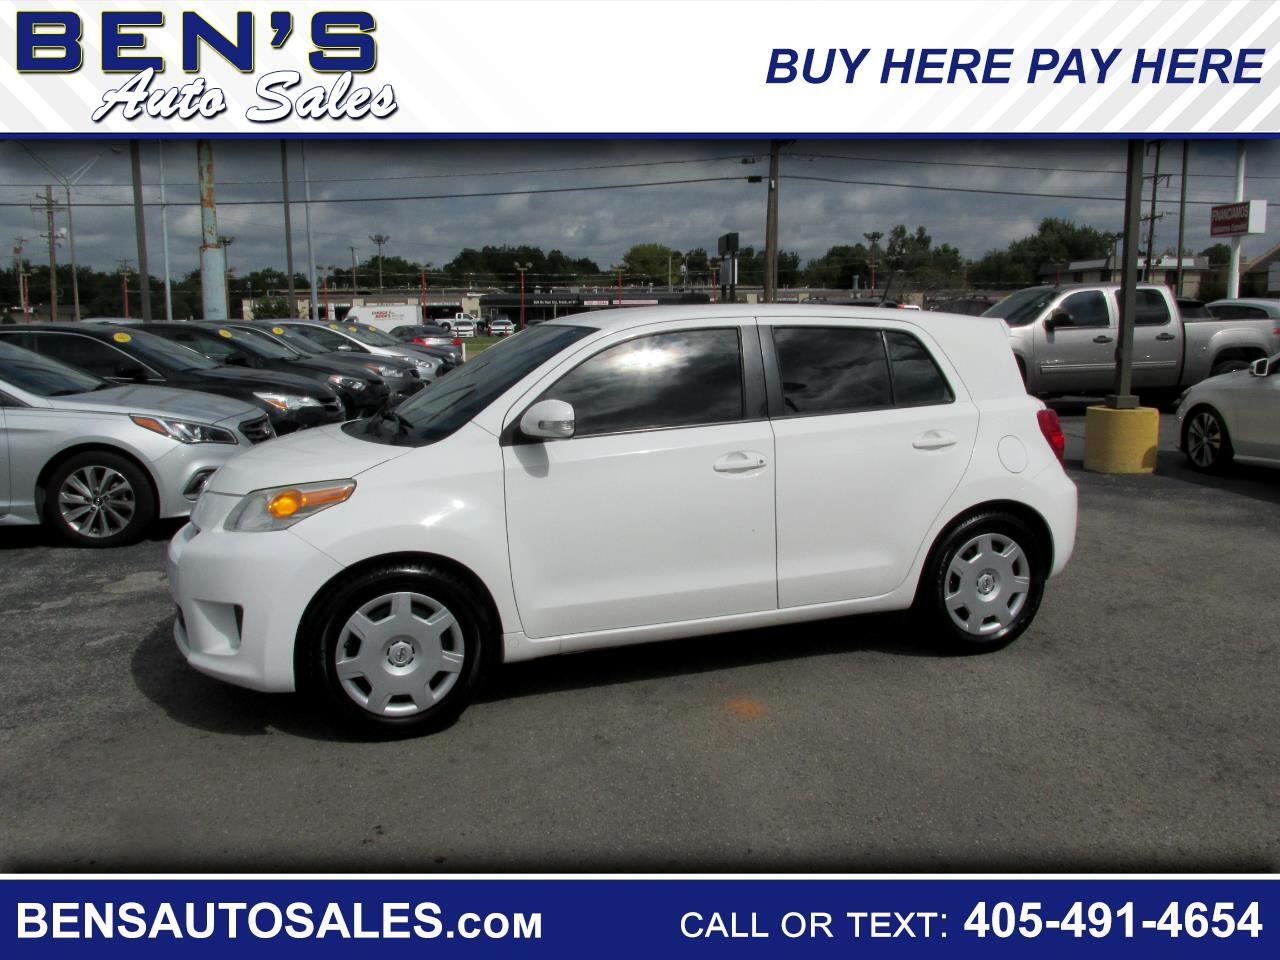 2011 Scion xD 5-Door Hatchback 4-Spd AT